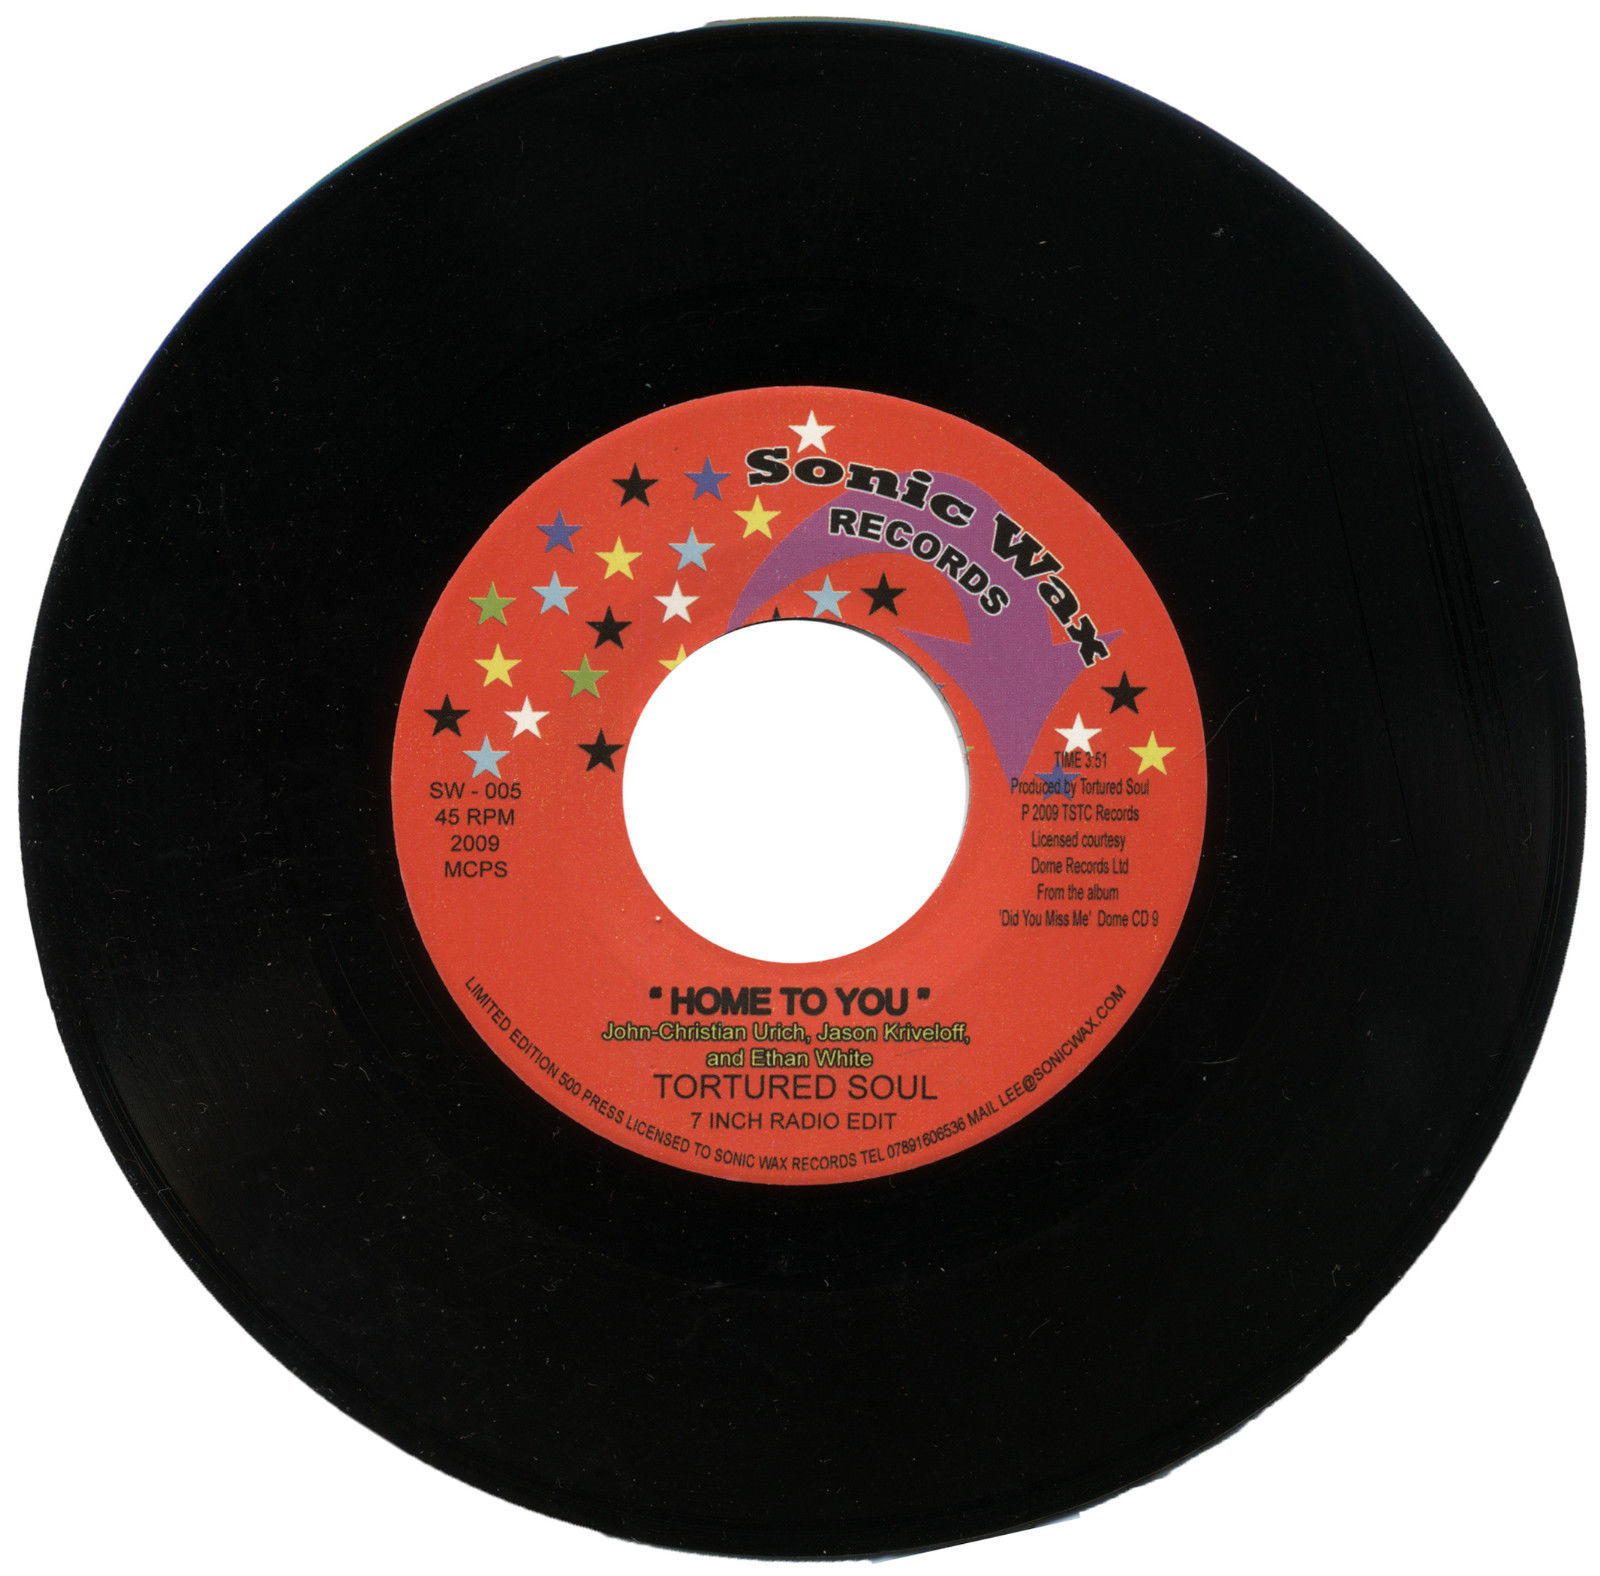 Tortured Soul – Home To You 45 (Sonic Wax) 7″ Vinyl